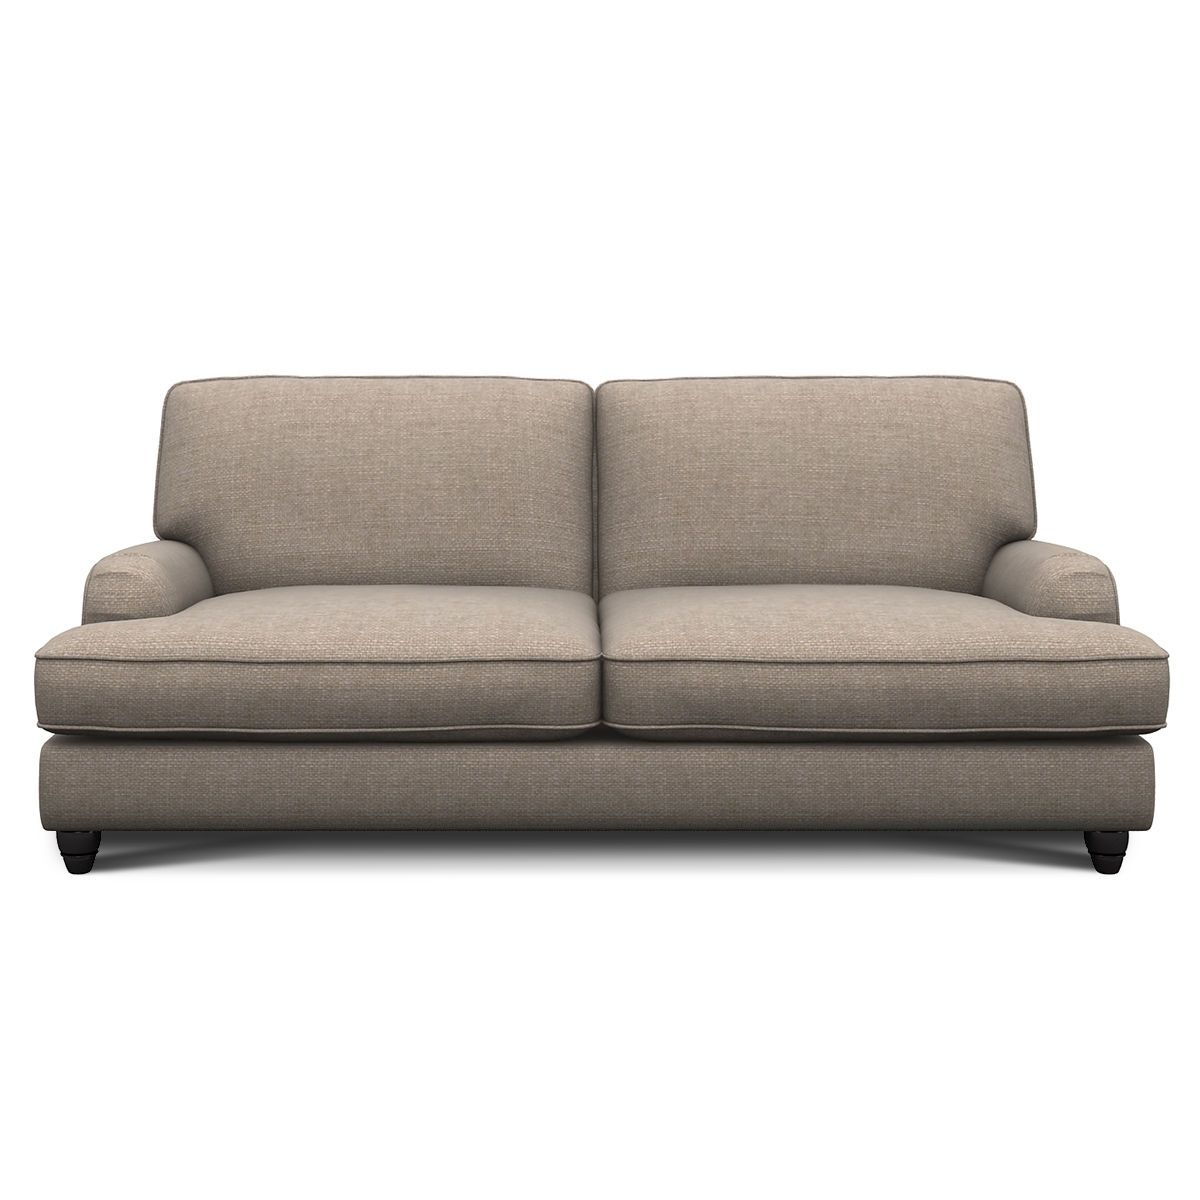 Notting Hill Fabric 3 Seater Sofa Next Day Delivery